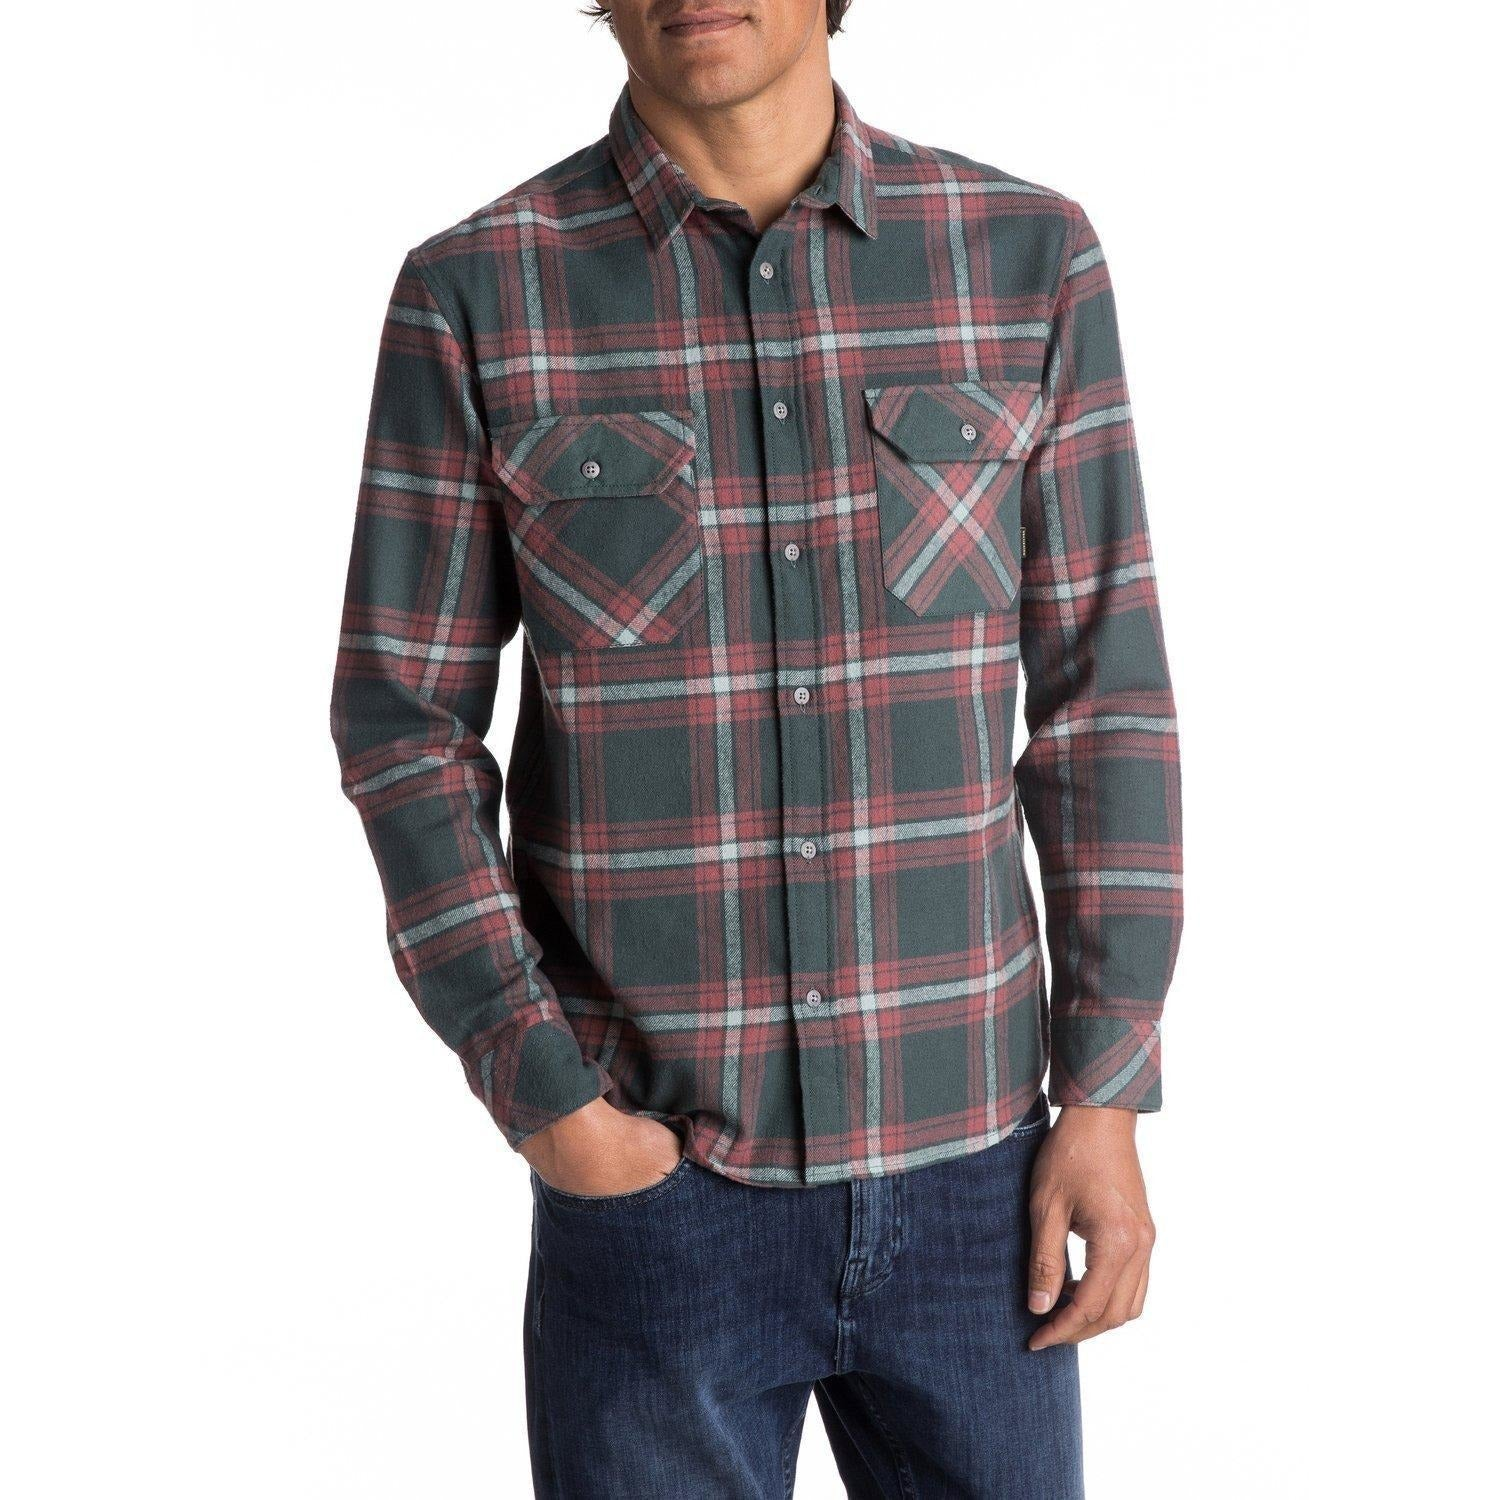 Quiksilver Fitz Forktail Flannel Long Sleeve Shirt - 88 Gear